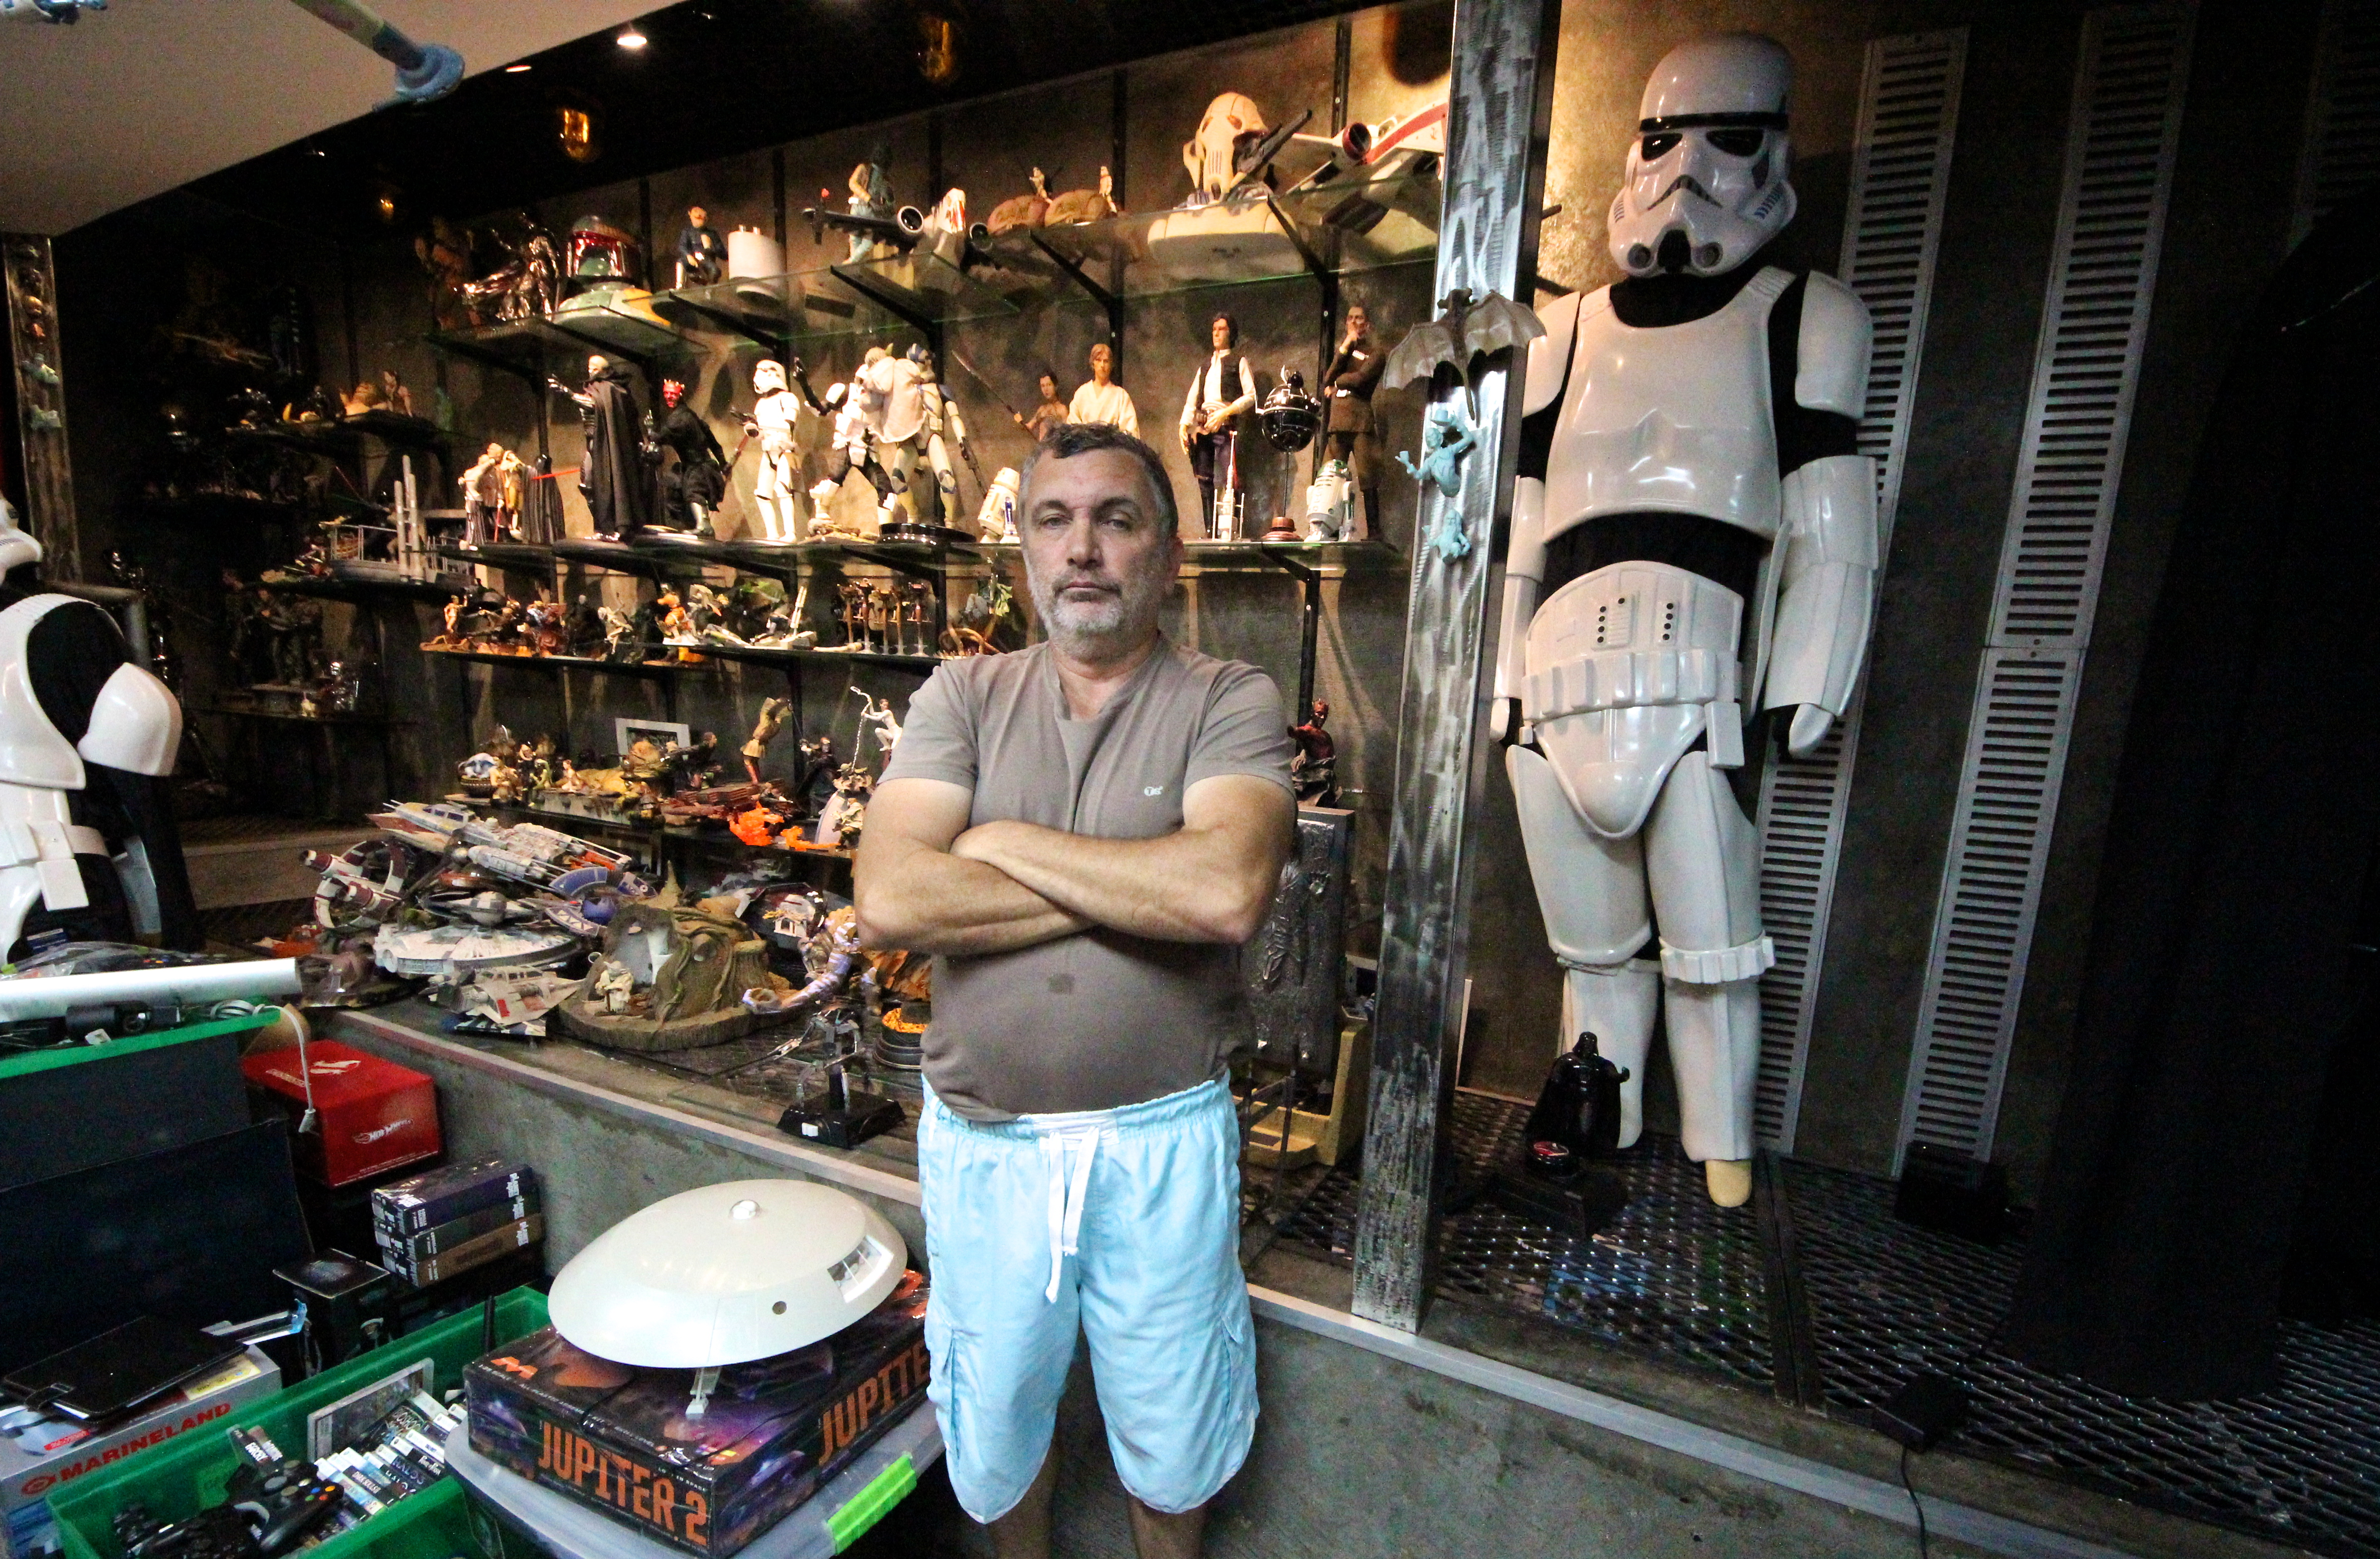 Biologist Mario Moscatelli poses with his collection of Star Wars memorabilia